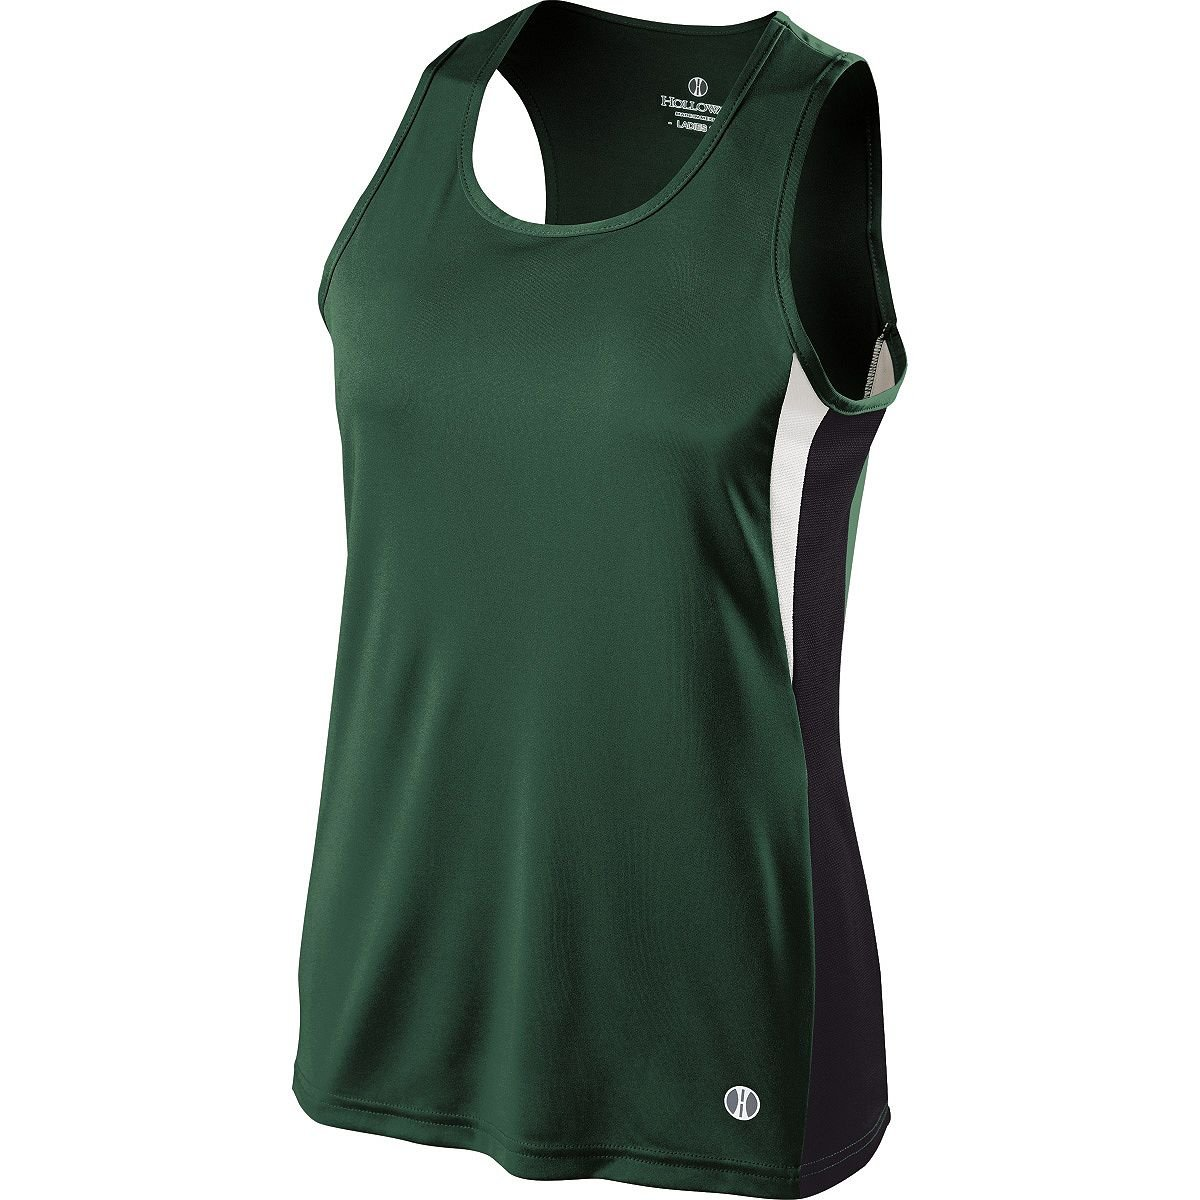 Holloway Ladies Dry Excel Vertical Singlet (Small, Forest/Black/White) by Holloway